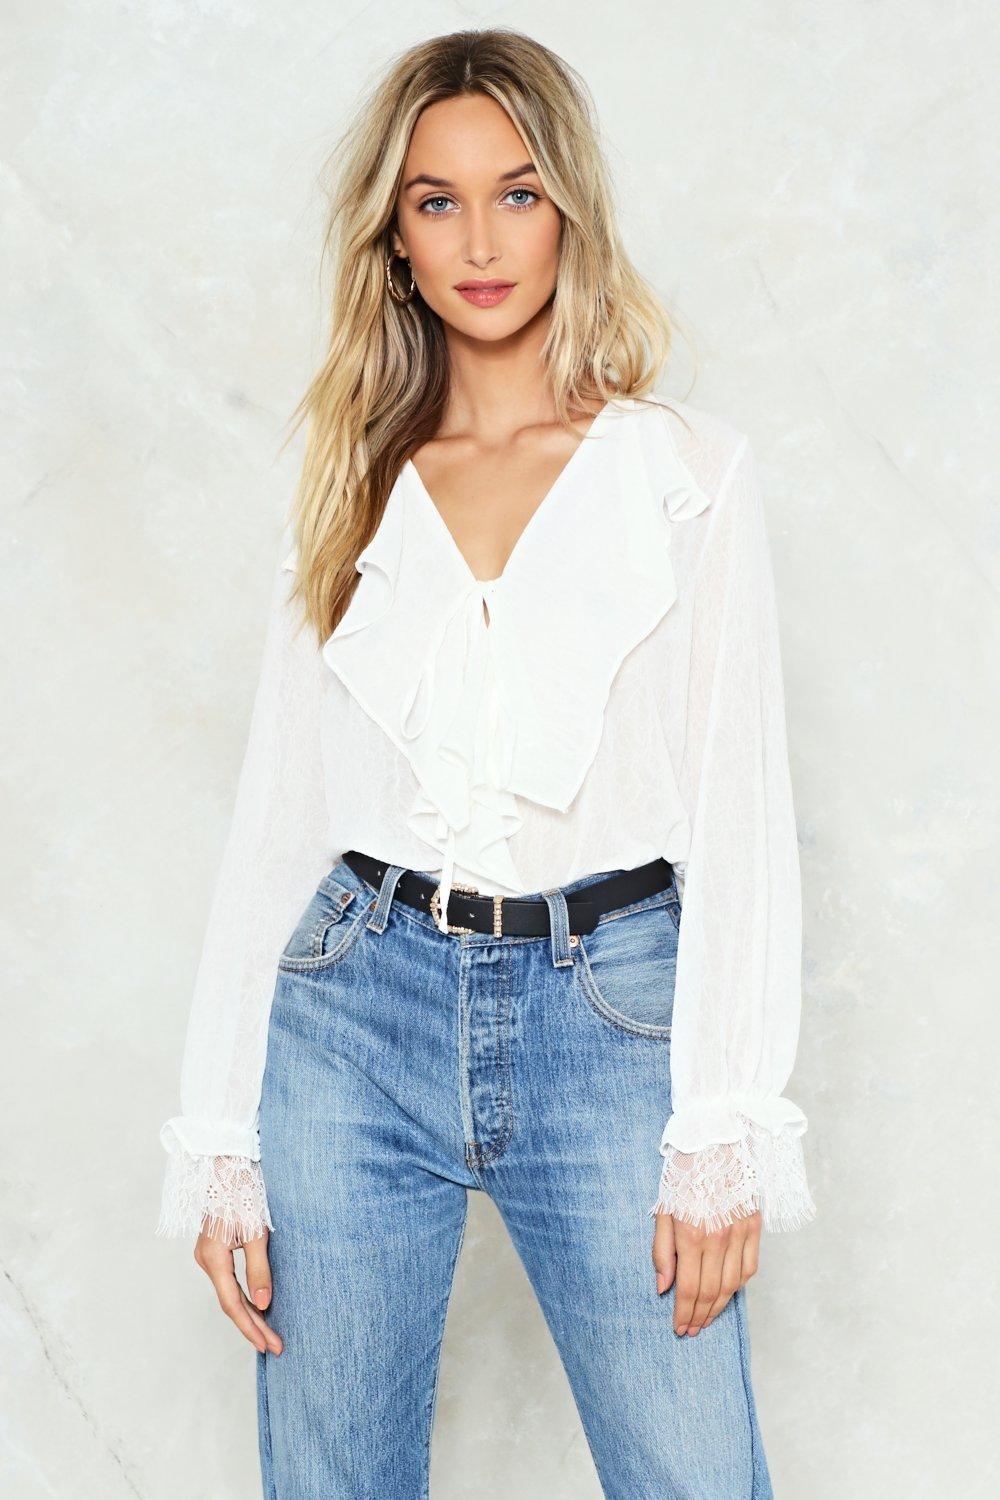 More Haste Ruffle Top